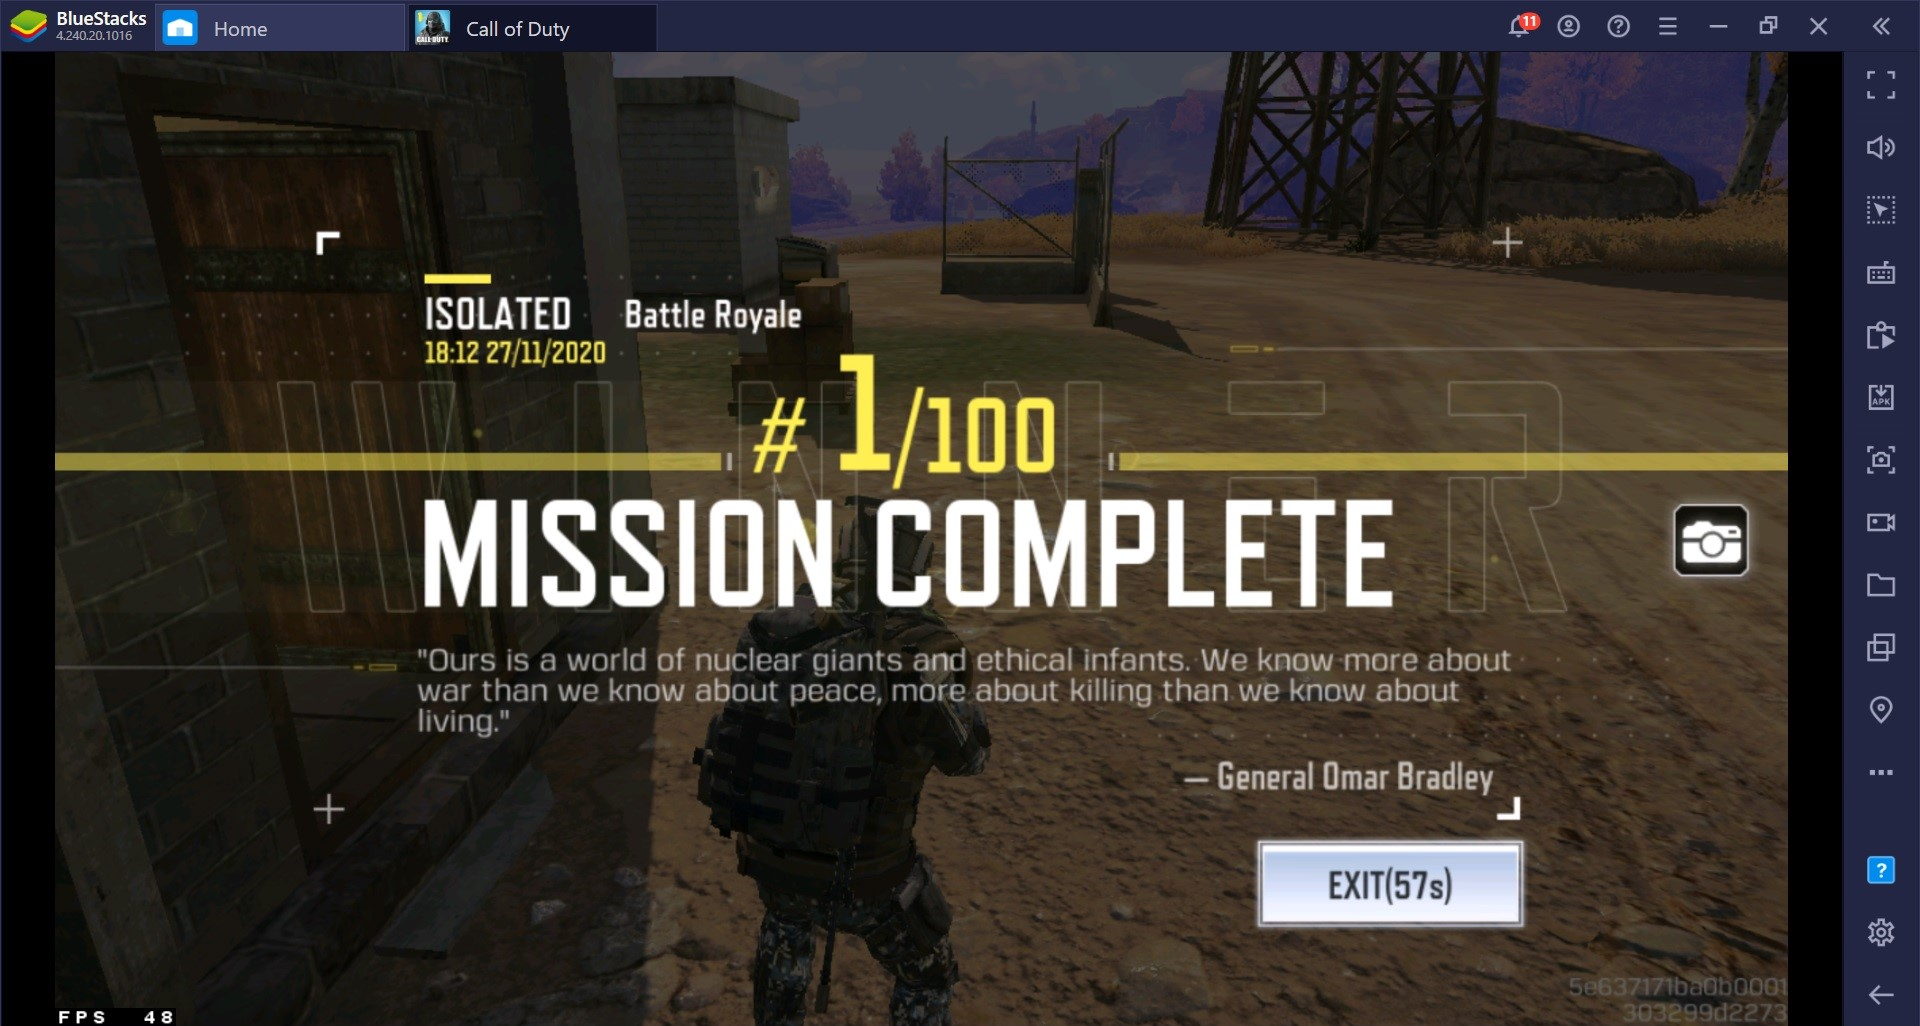 Start Playing Call of Duty: Mobile Ranked Matches with This Battle Royale Guide